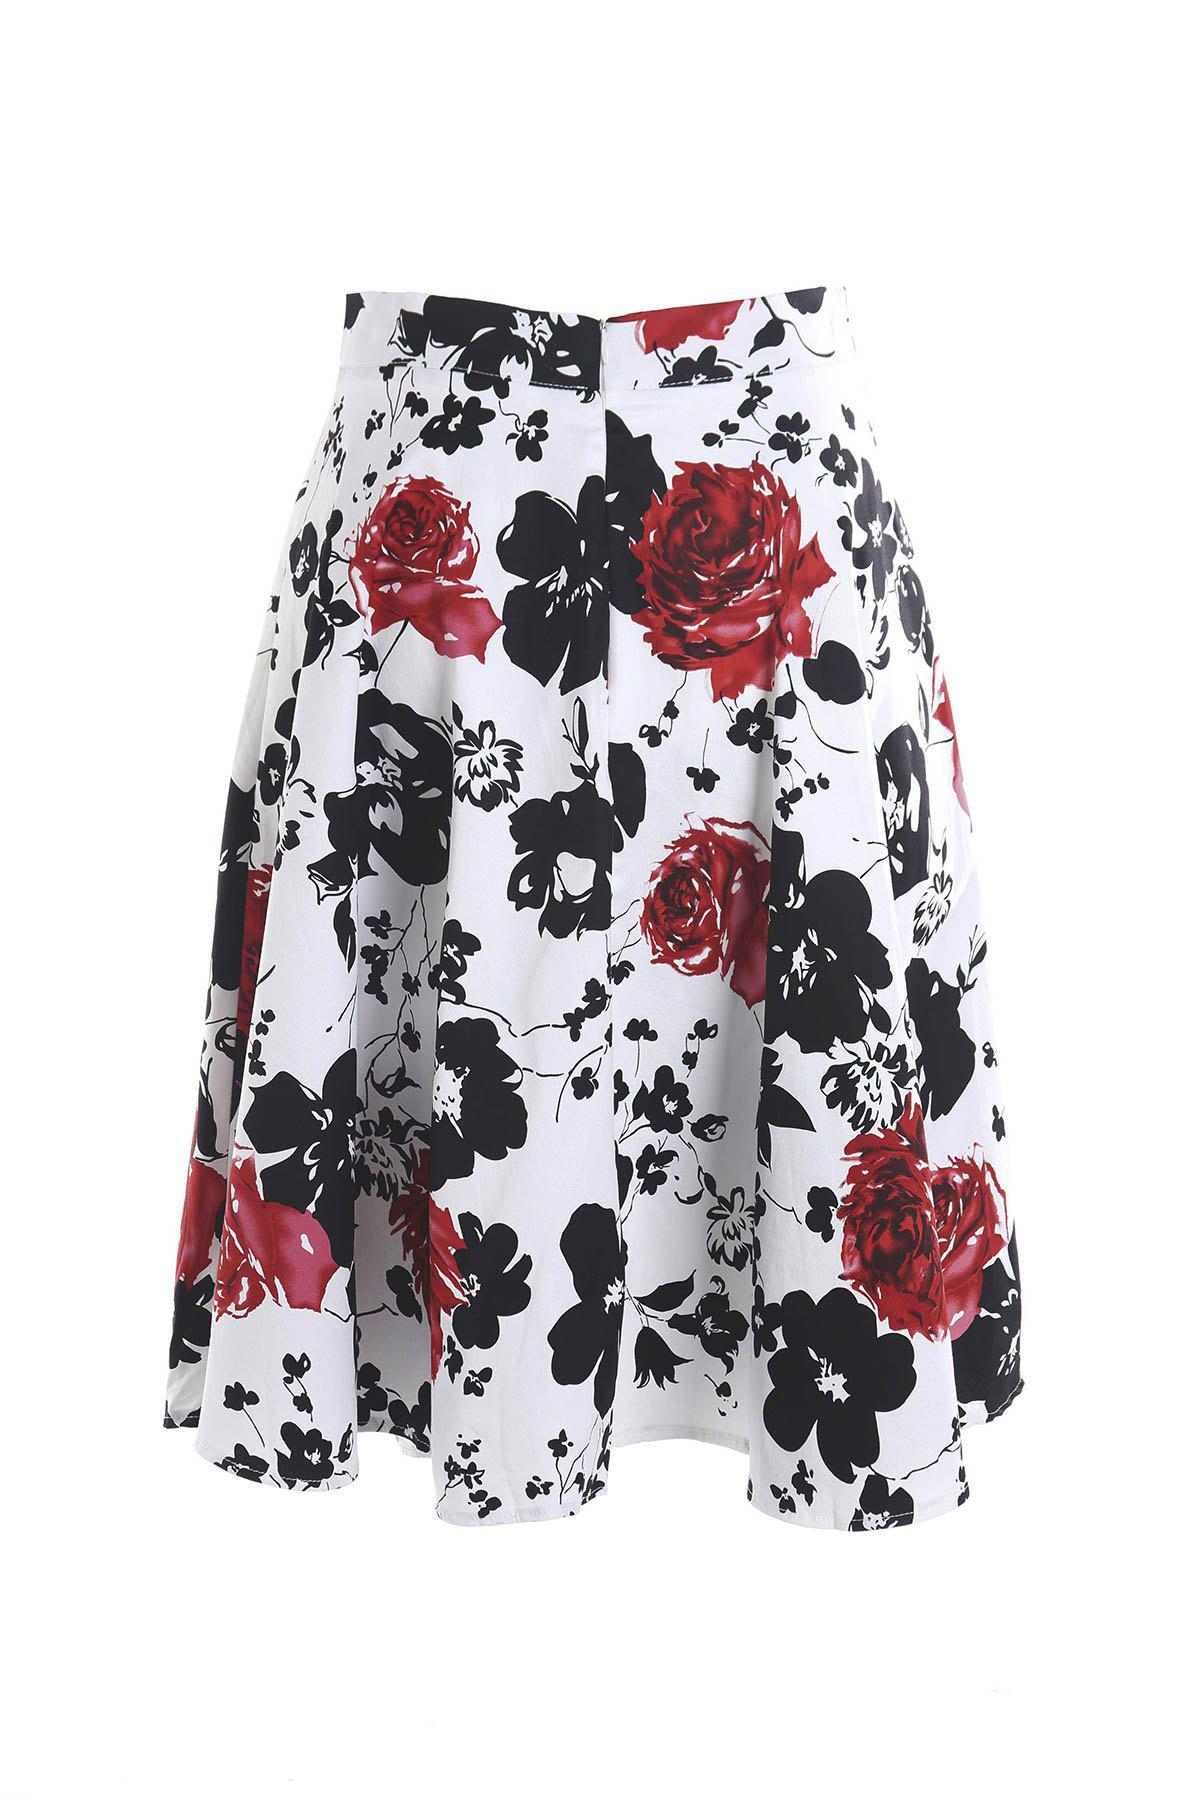 Vintage Style High-Waisted A-Line Floral Print Women's Skirt - RED/WHITE 2XL